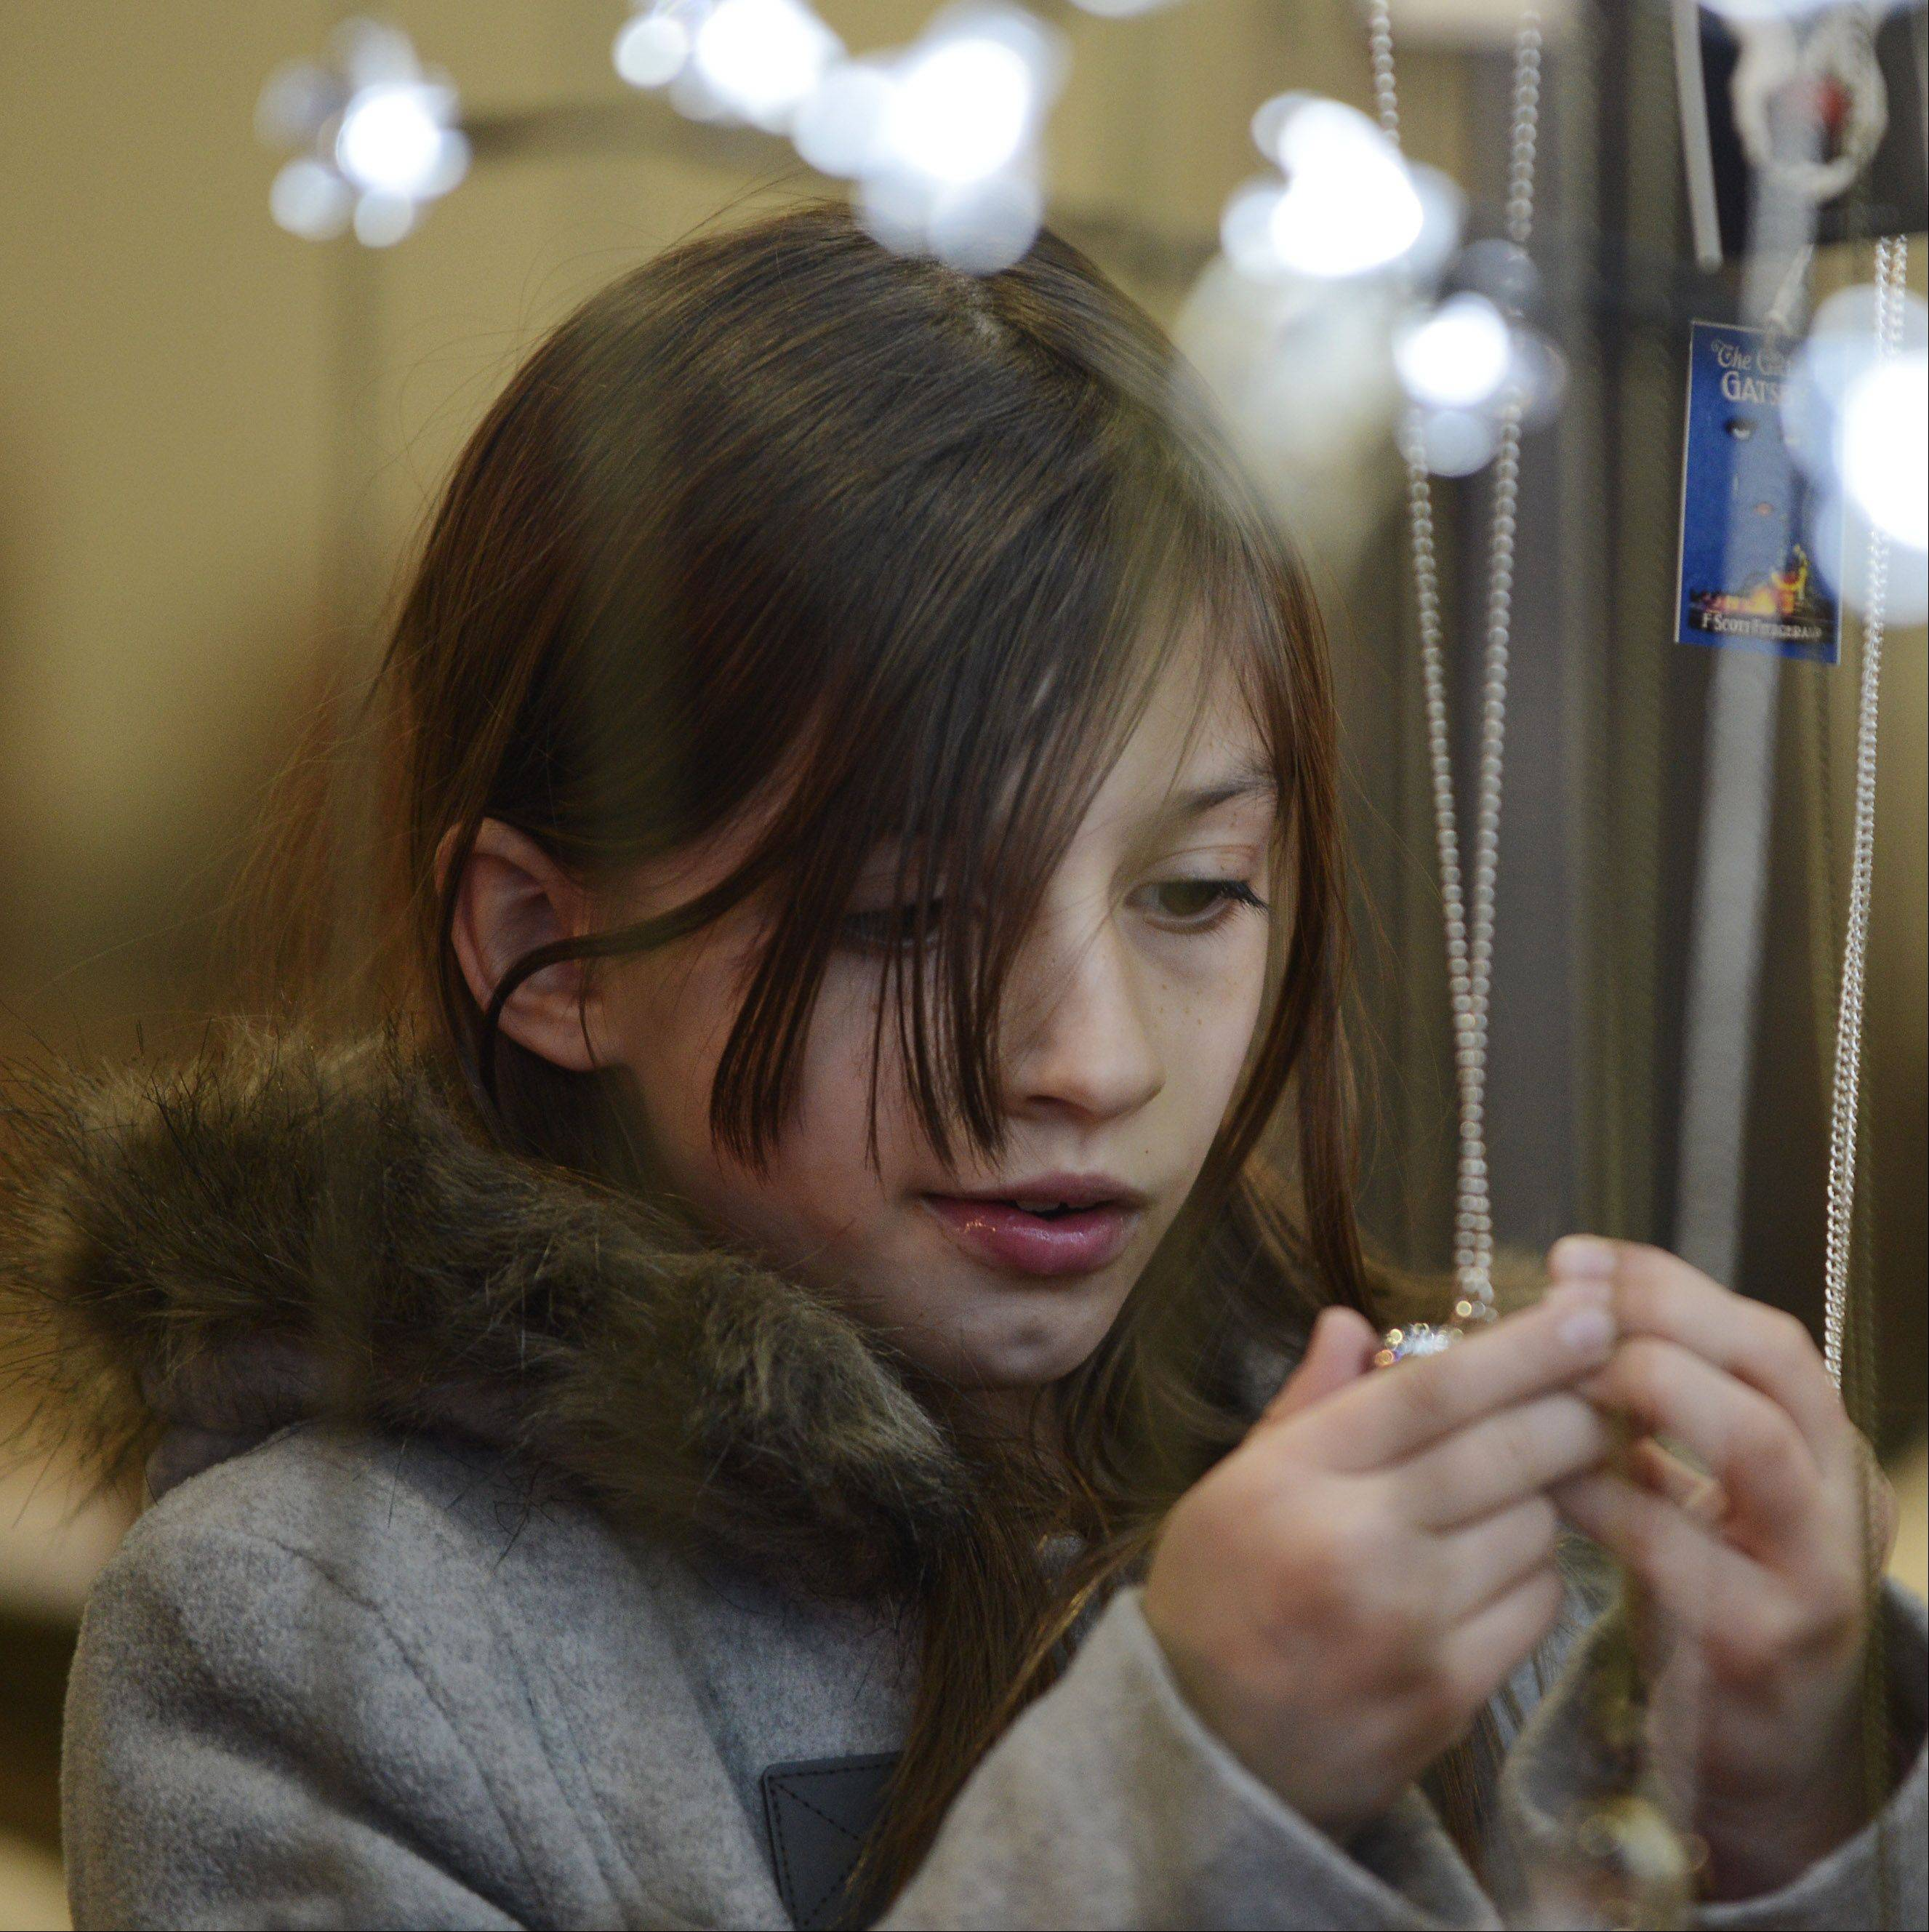 Madison Leaman, 8, of Woodstock views jewelry items displayed by a merchant during the Holiday Hoedown at the Lake County Fairgrounds Saturday. The event continues today.